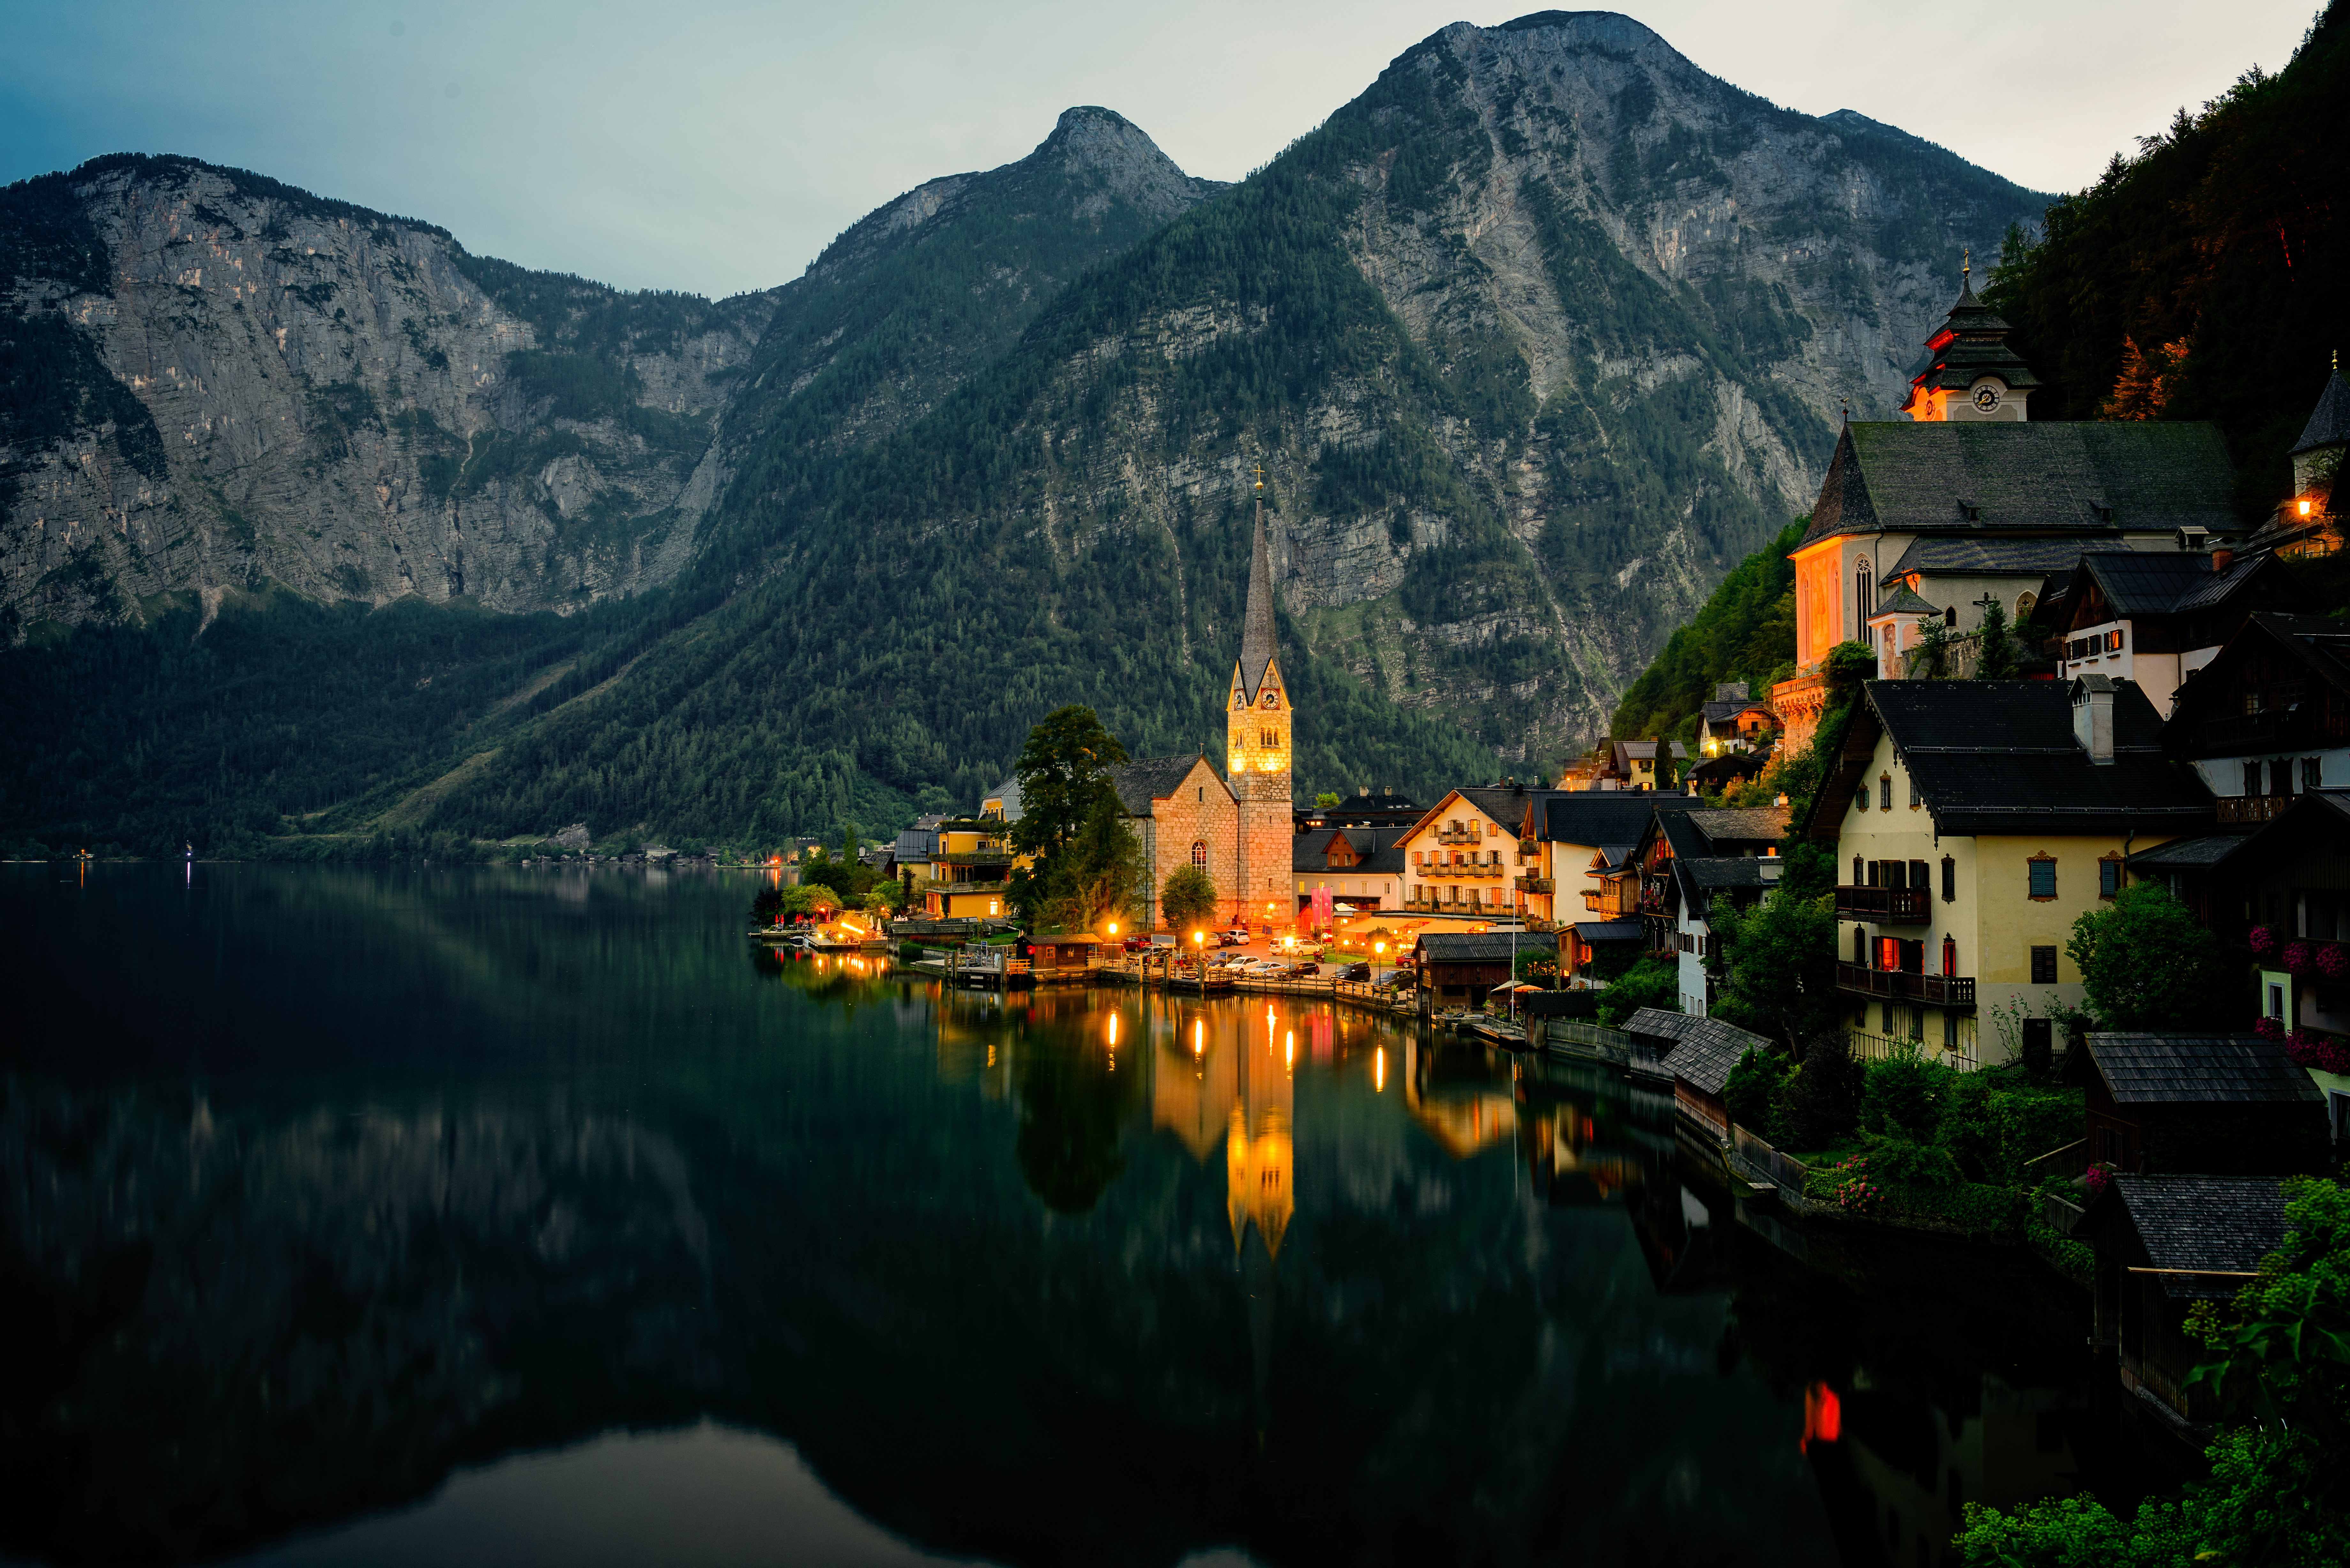 Haus am see wallpaper  25 Hallstatt HD Wallpapers | Hintergründe - Wallpaper Abyss